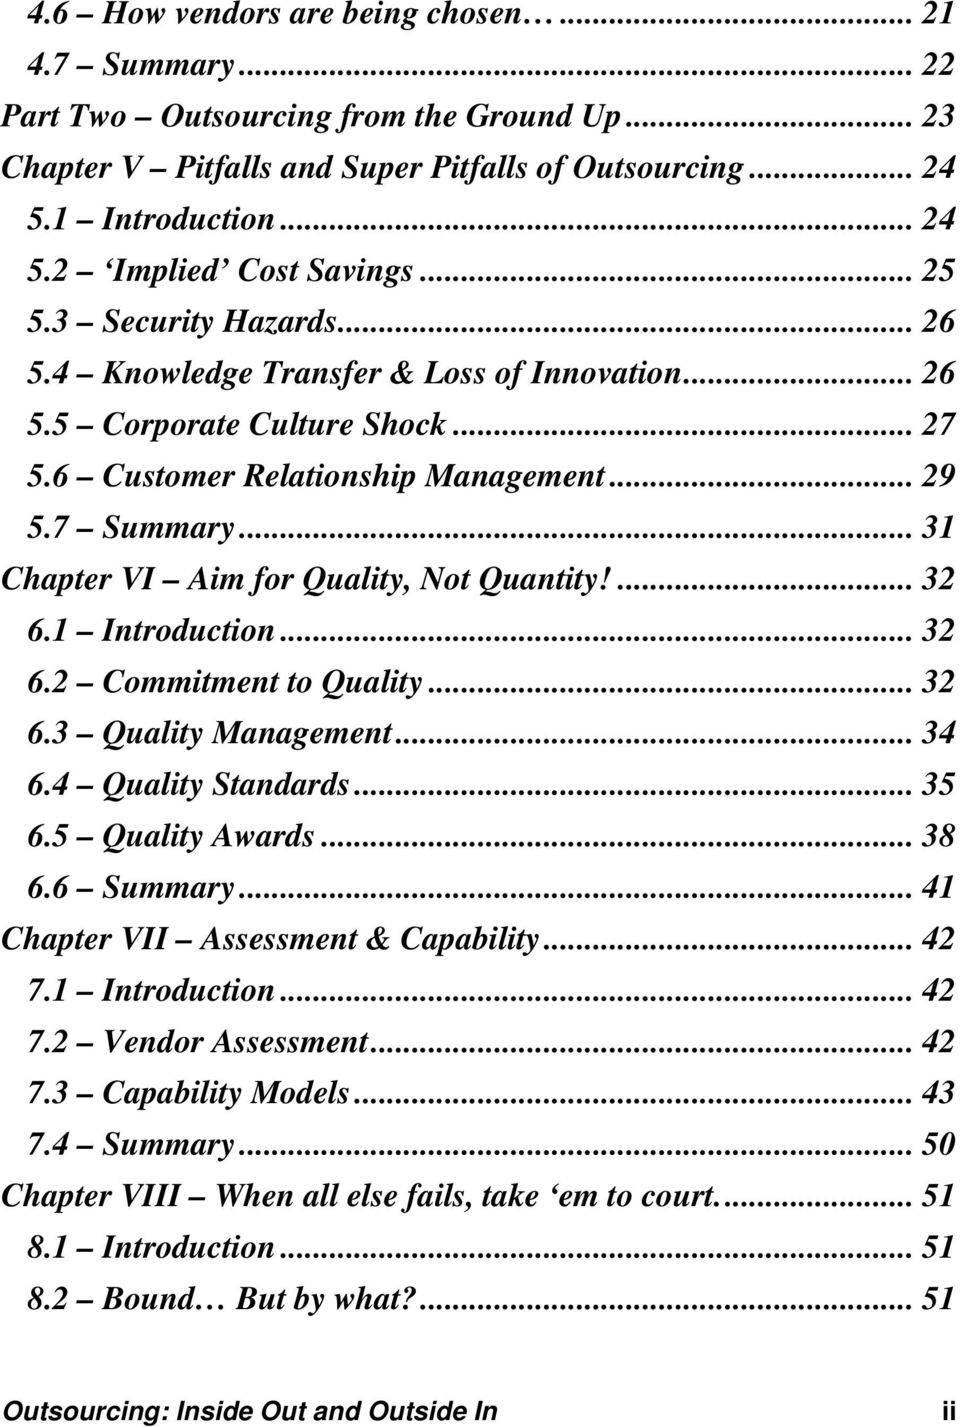 .. 31 Chapter VI Aim for Quality, Not Quantity!... 32 6.1 Introduction... 32 6.2 Commitment to Quality... 32 6.3 Quality Management... 34 6.4 Quality Standards... 35 6.5 Quality Awards... 38 6.